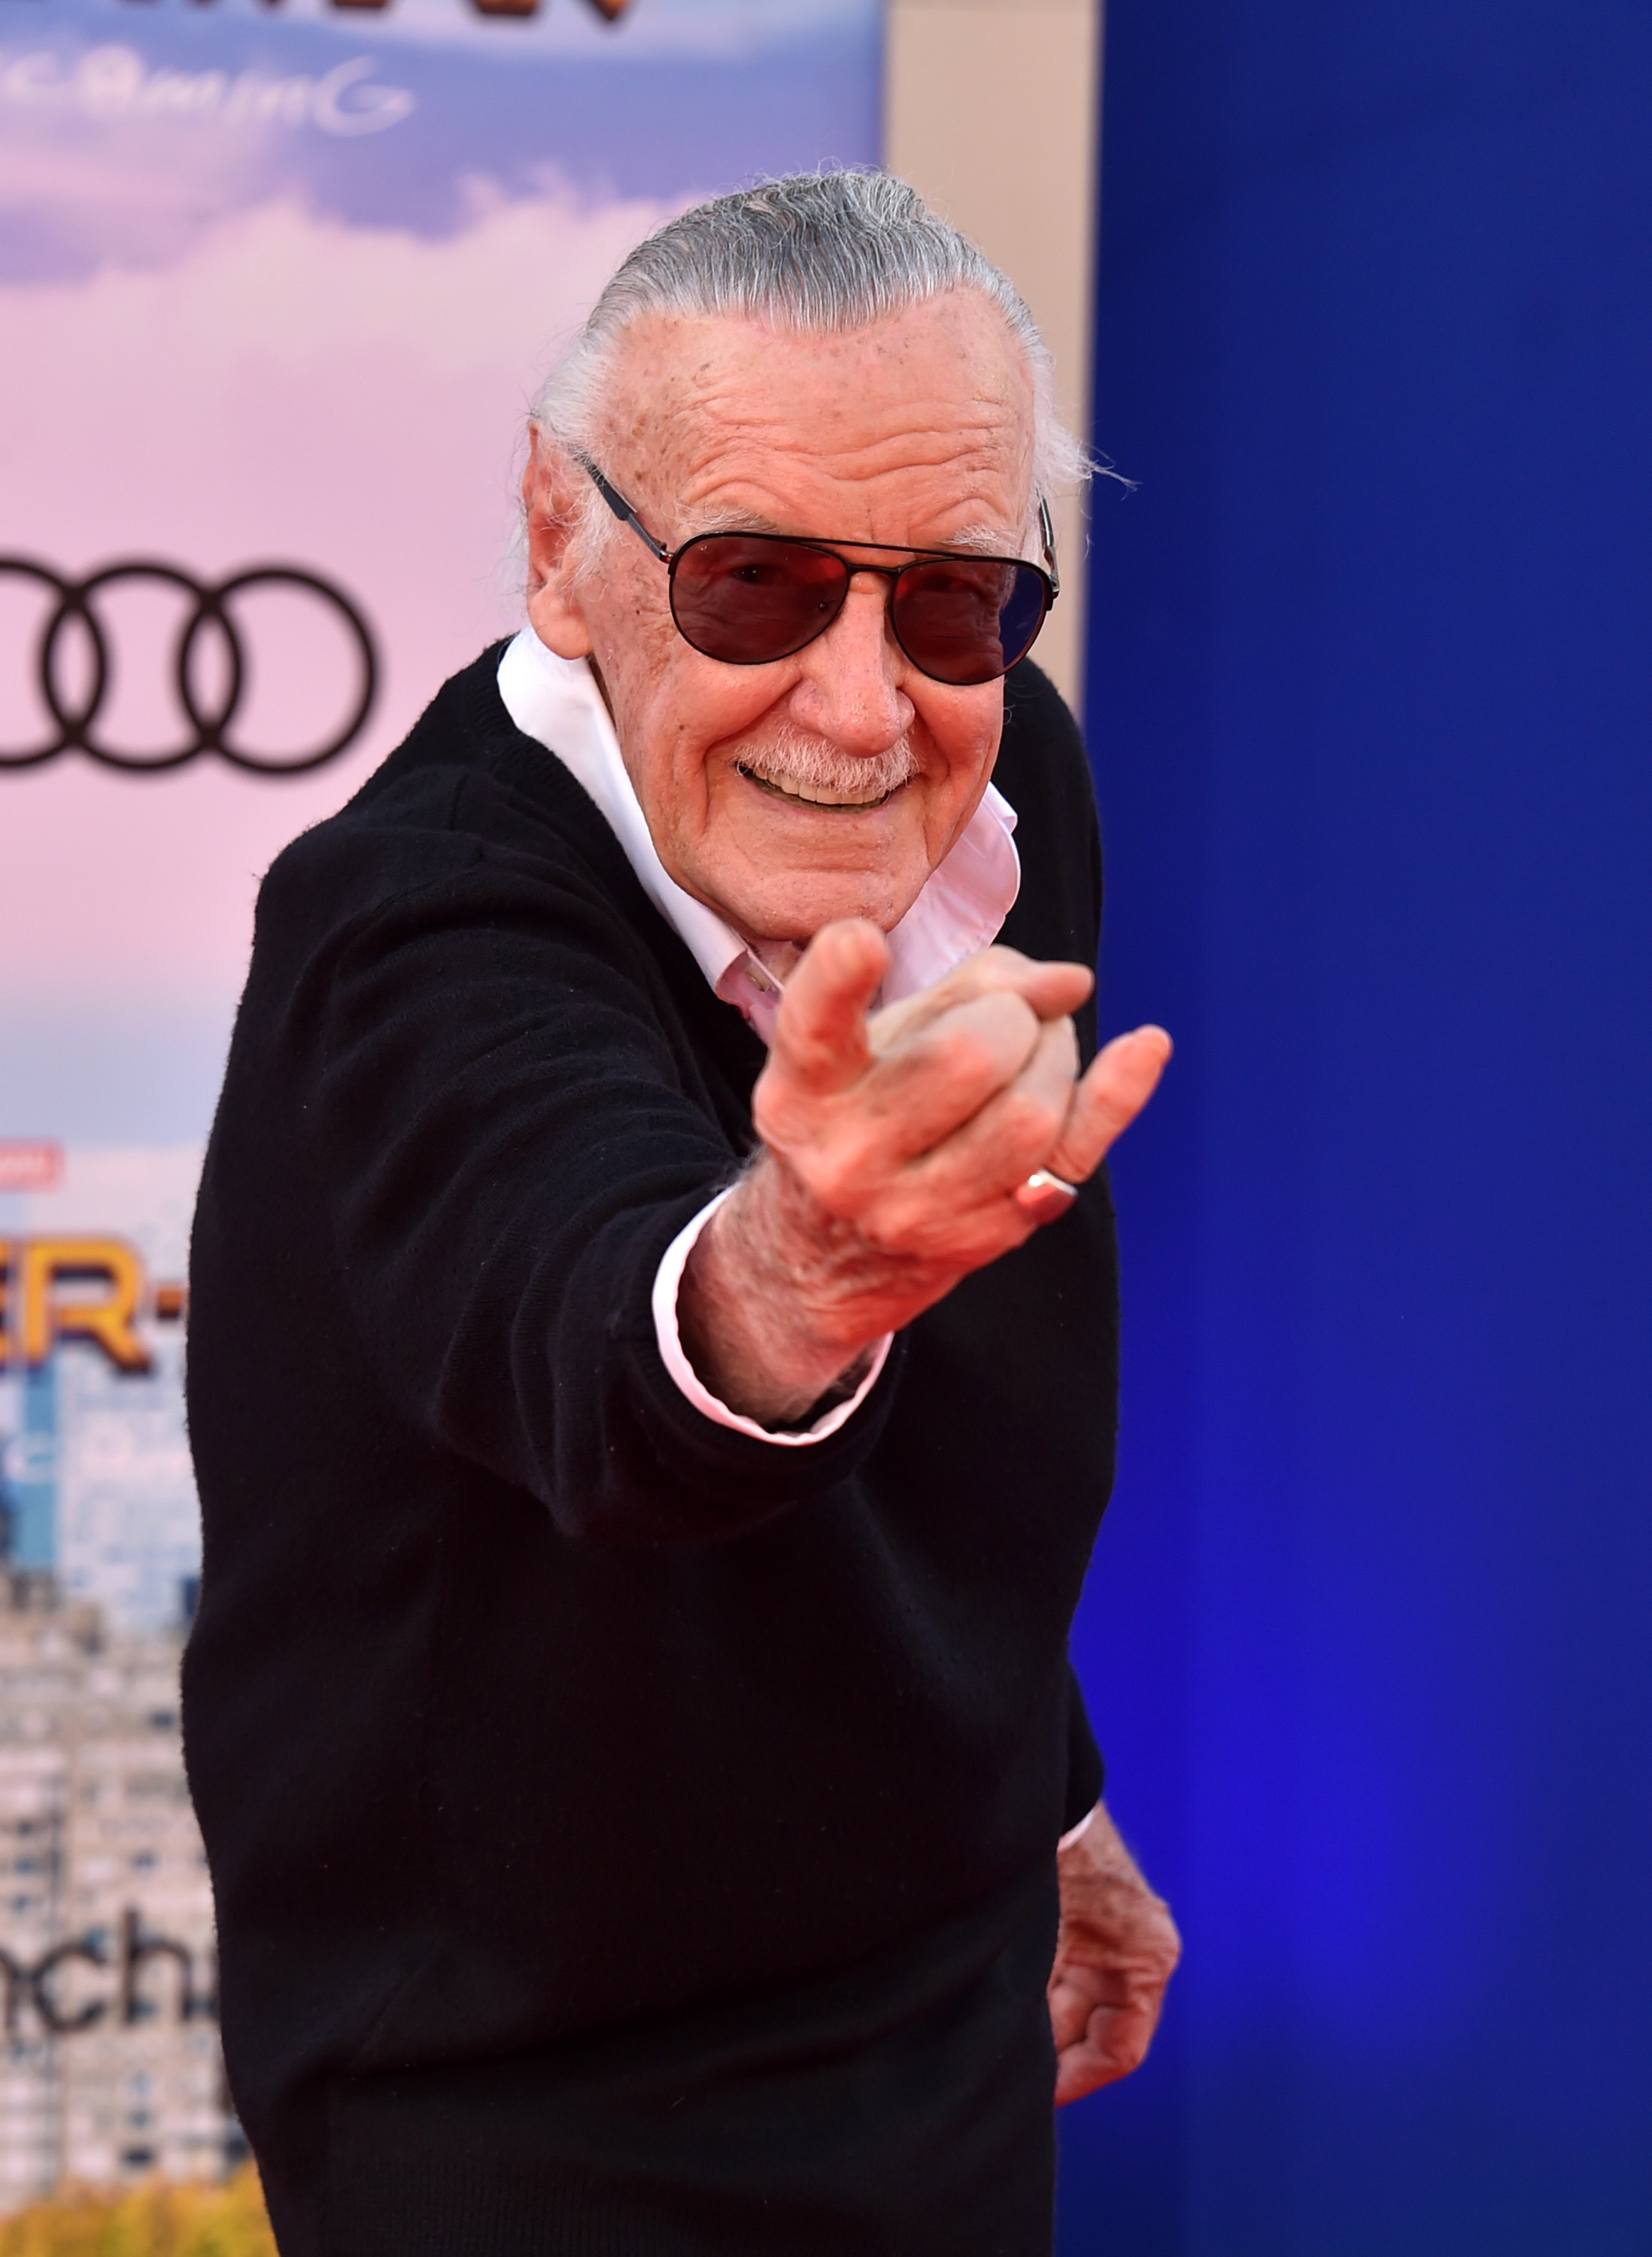 Stan Lee attends the premiere of Columbia Pictures' 'Spider-Man: Homecoming' at TCL Chinese Theatre on June 28, 2017 in Hollywood, California. (Photo by Alberto E. Rodriguez/Getty Images)